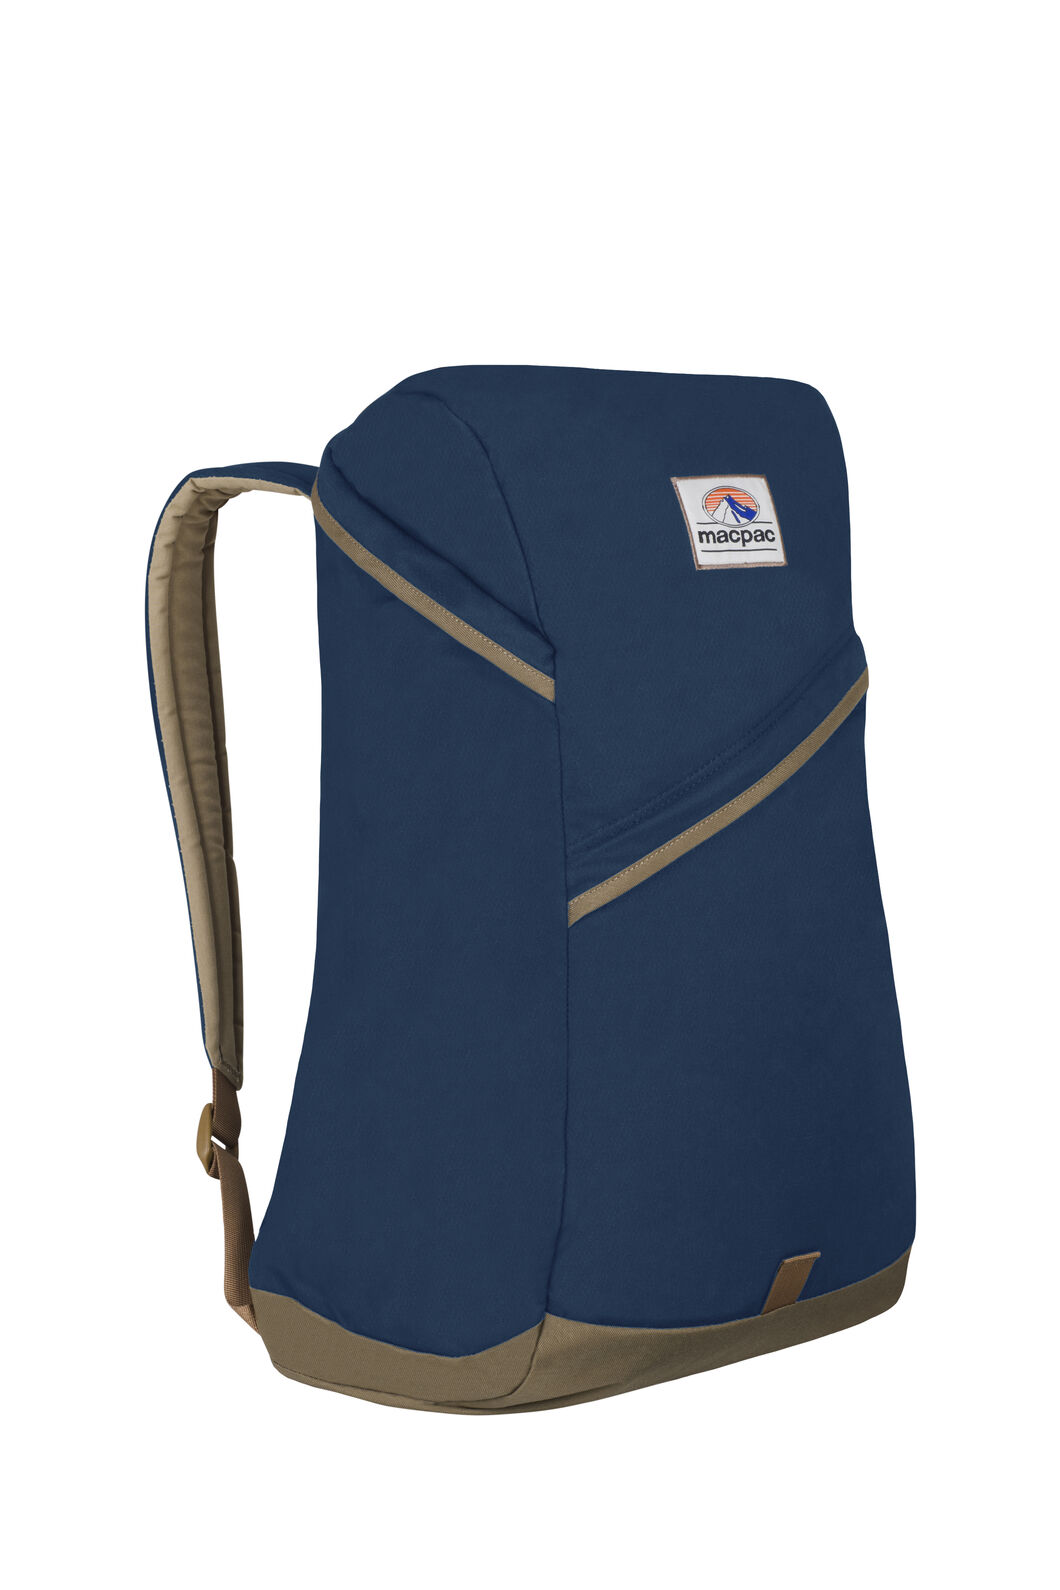 Macpac Falcon Pack, Dusky Blue, hi-res